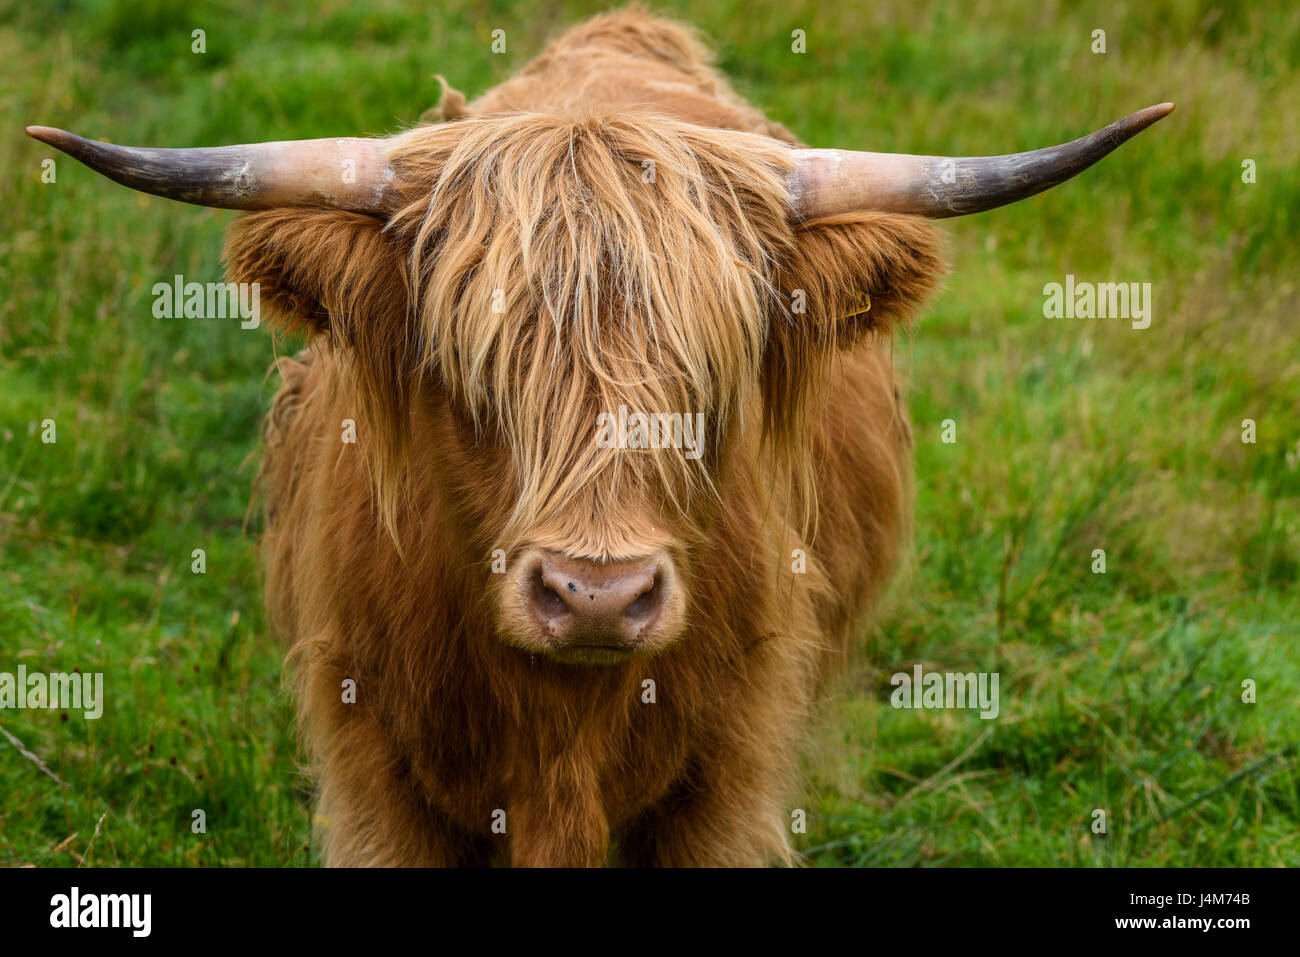 La mucca. Scotish highland bovini in ritratto; altopiani, Scotland, Regno Unito Foto Stock